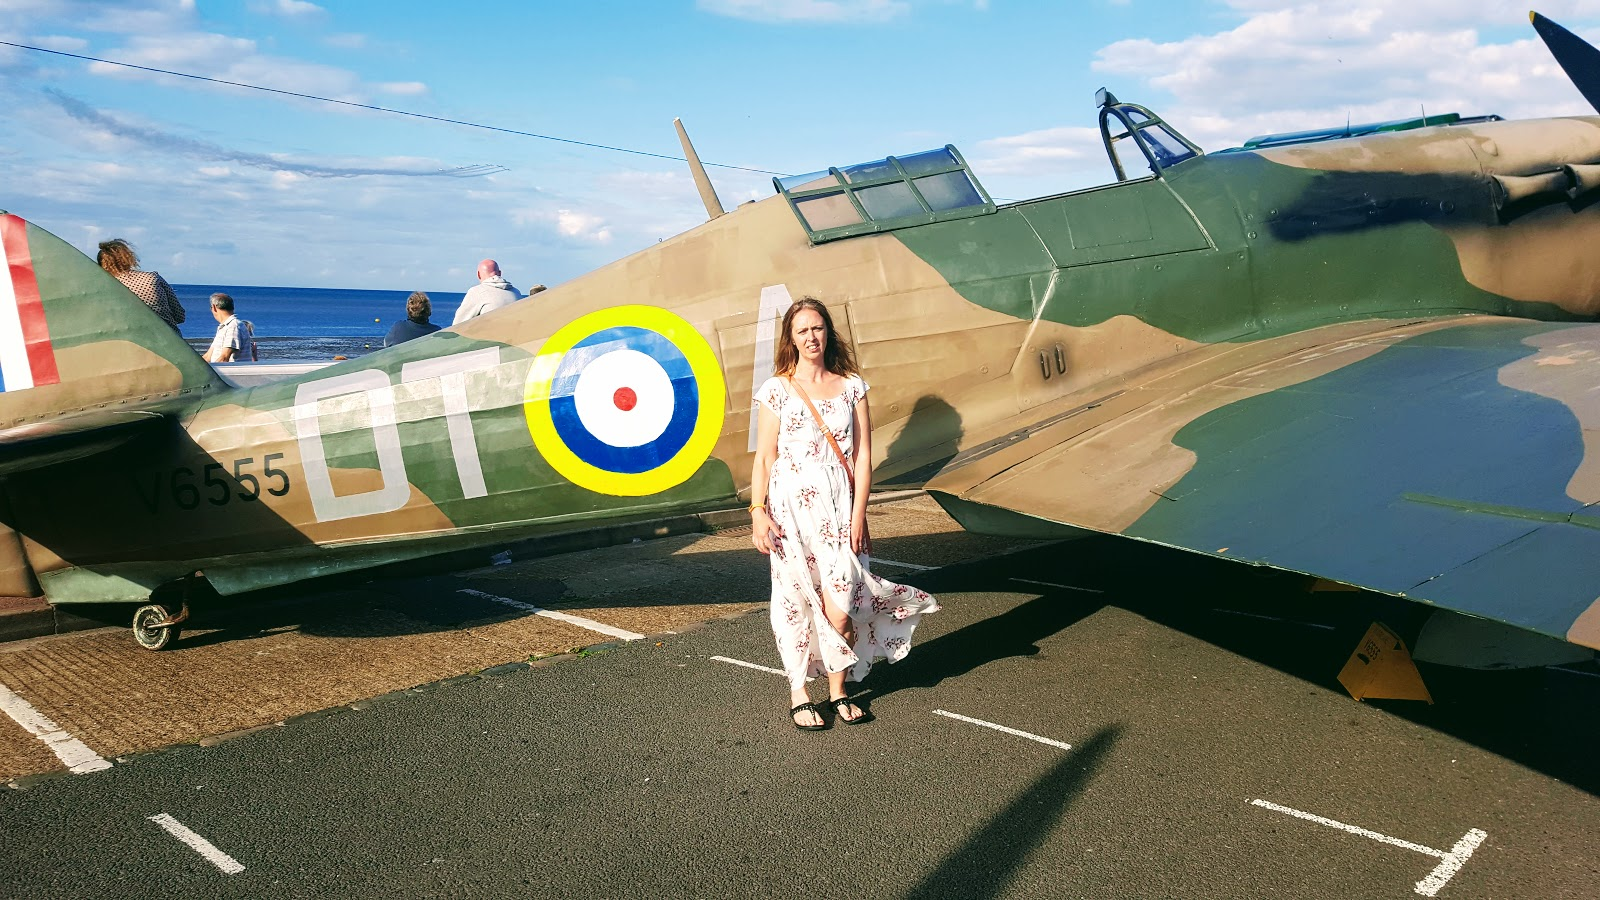 A Day Out At South East Air Show Herne Bay